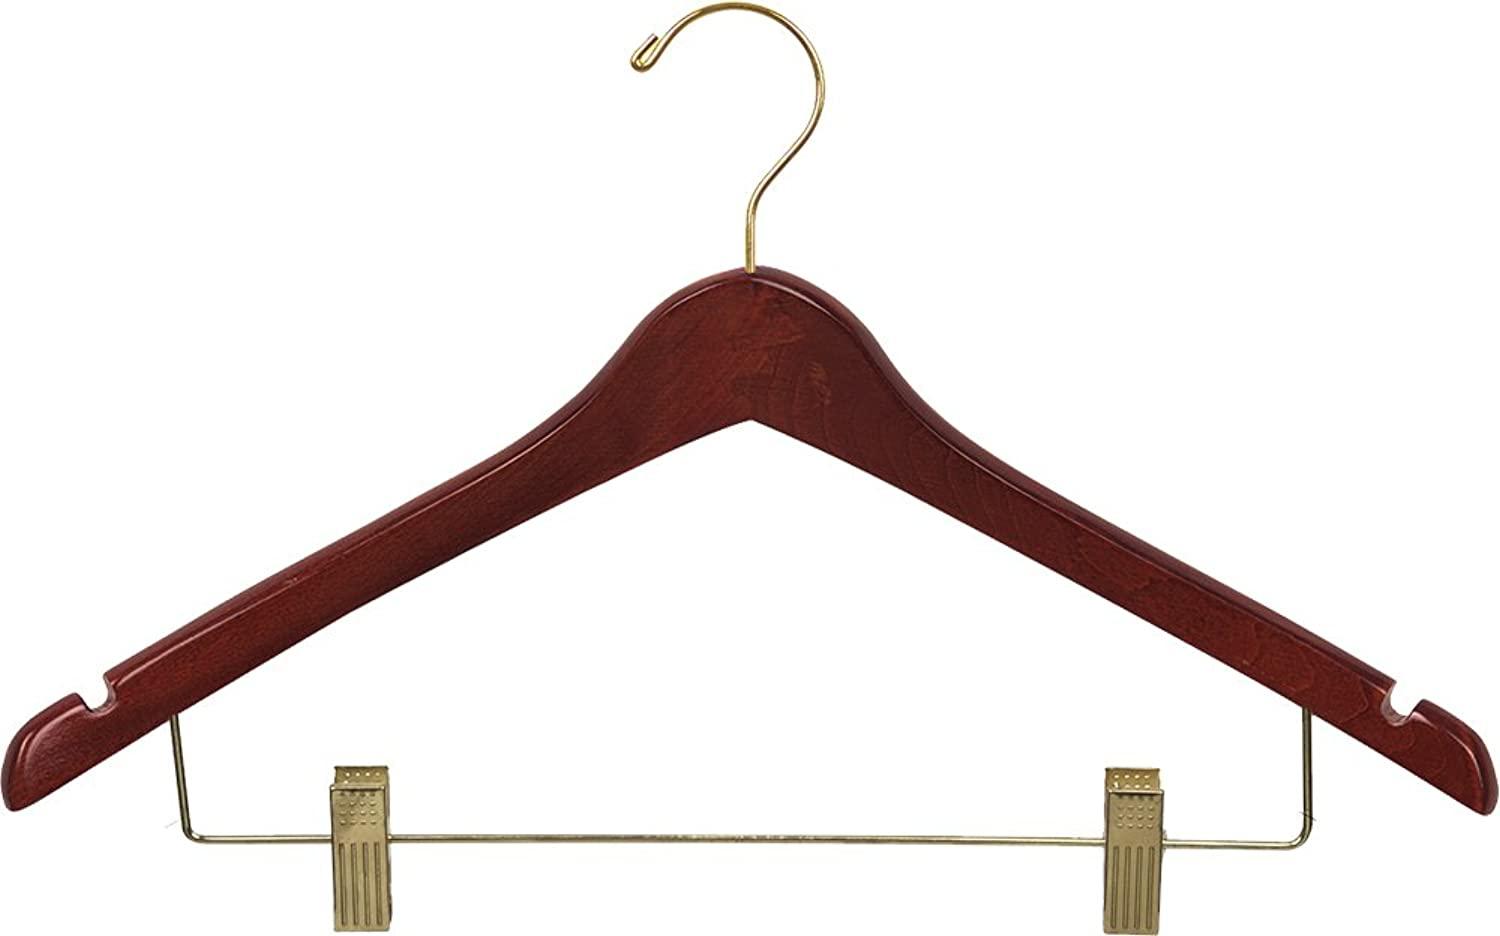 The Great American Hanger Company Curved Wood Combo Hanger w Adjustable Cushion Clips, Box of 100 17 Inch Wooden Hangers w Walnut Finish & Brass Swivel Hook & Notches for Shirt Jacket or Dress